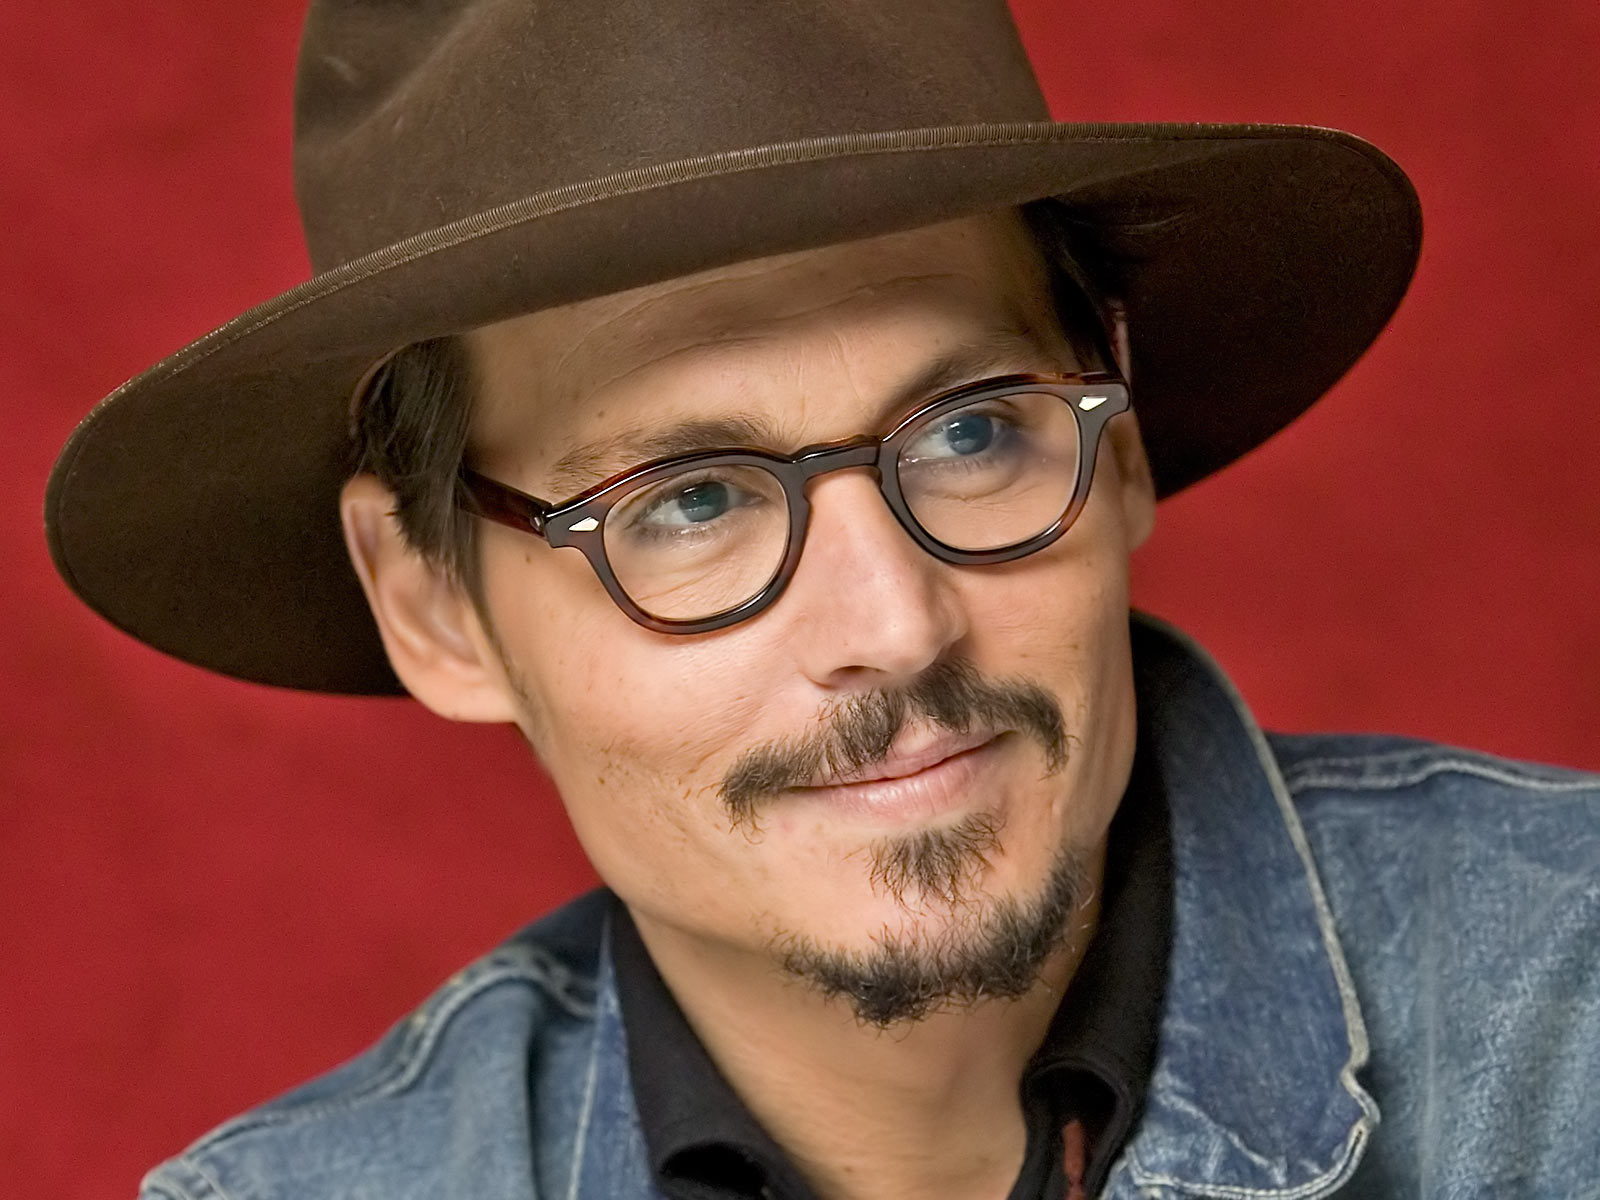 johnny depp wallpaper 1735